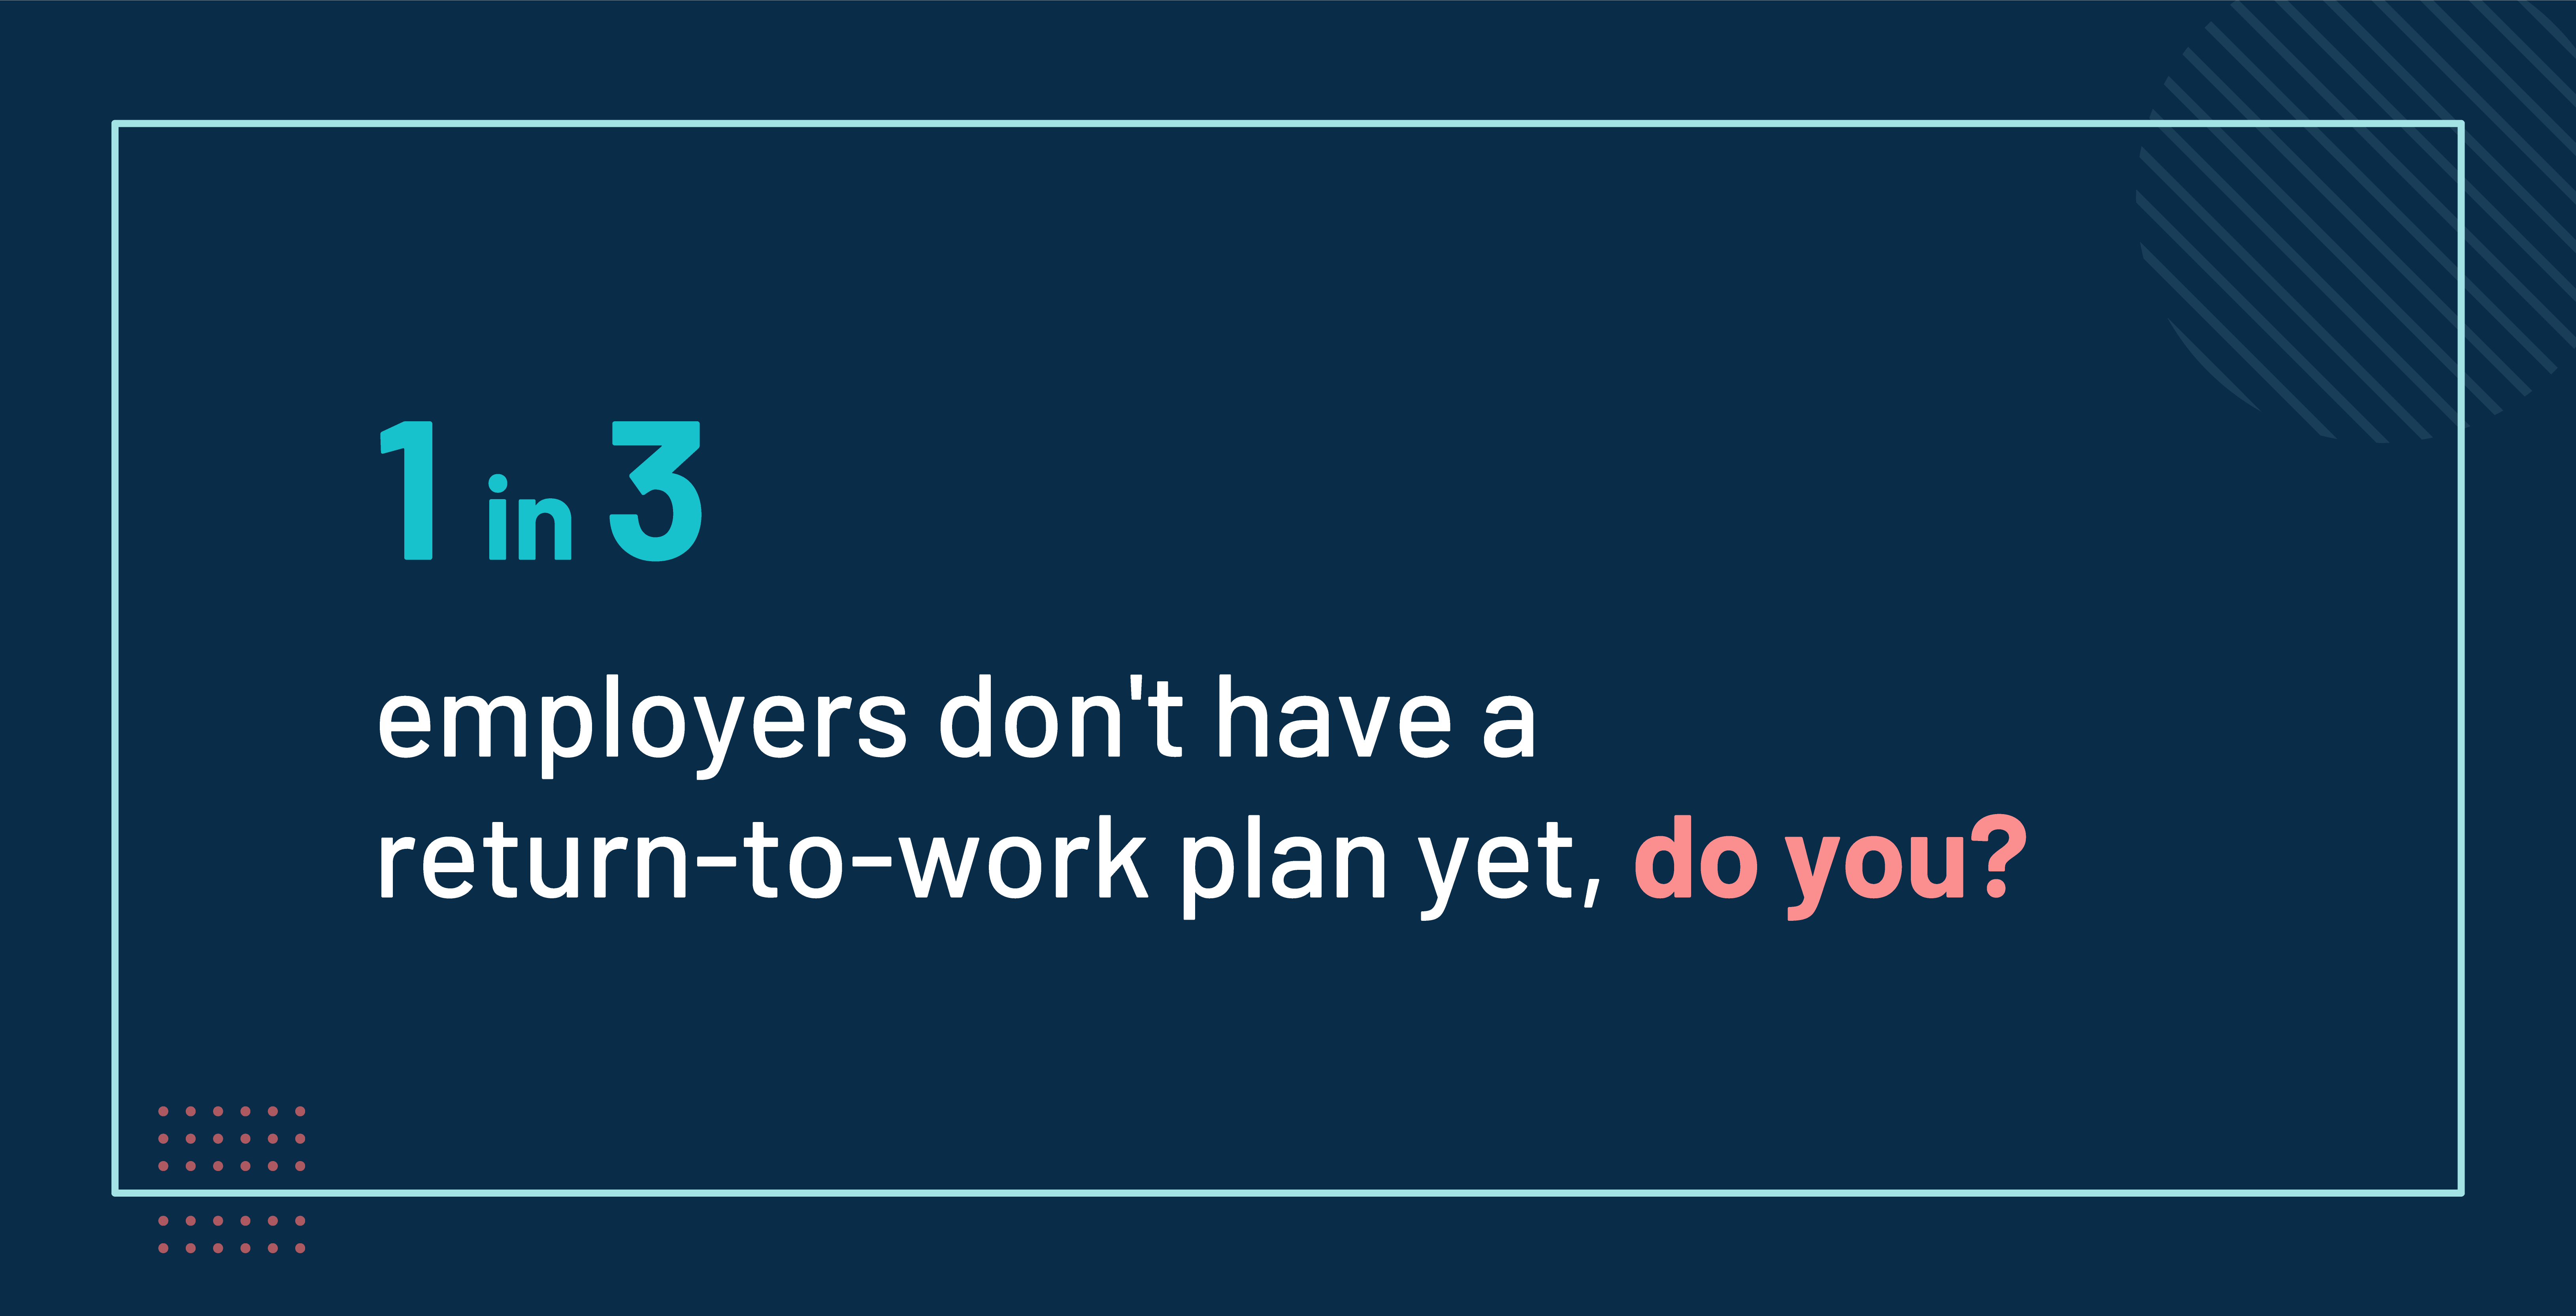 1 in 3 employers